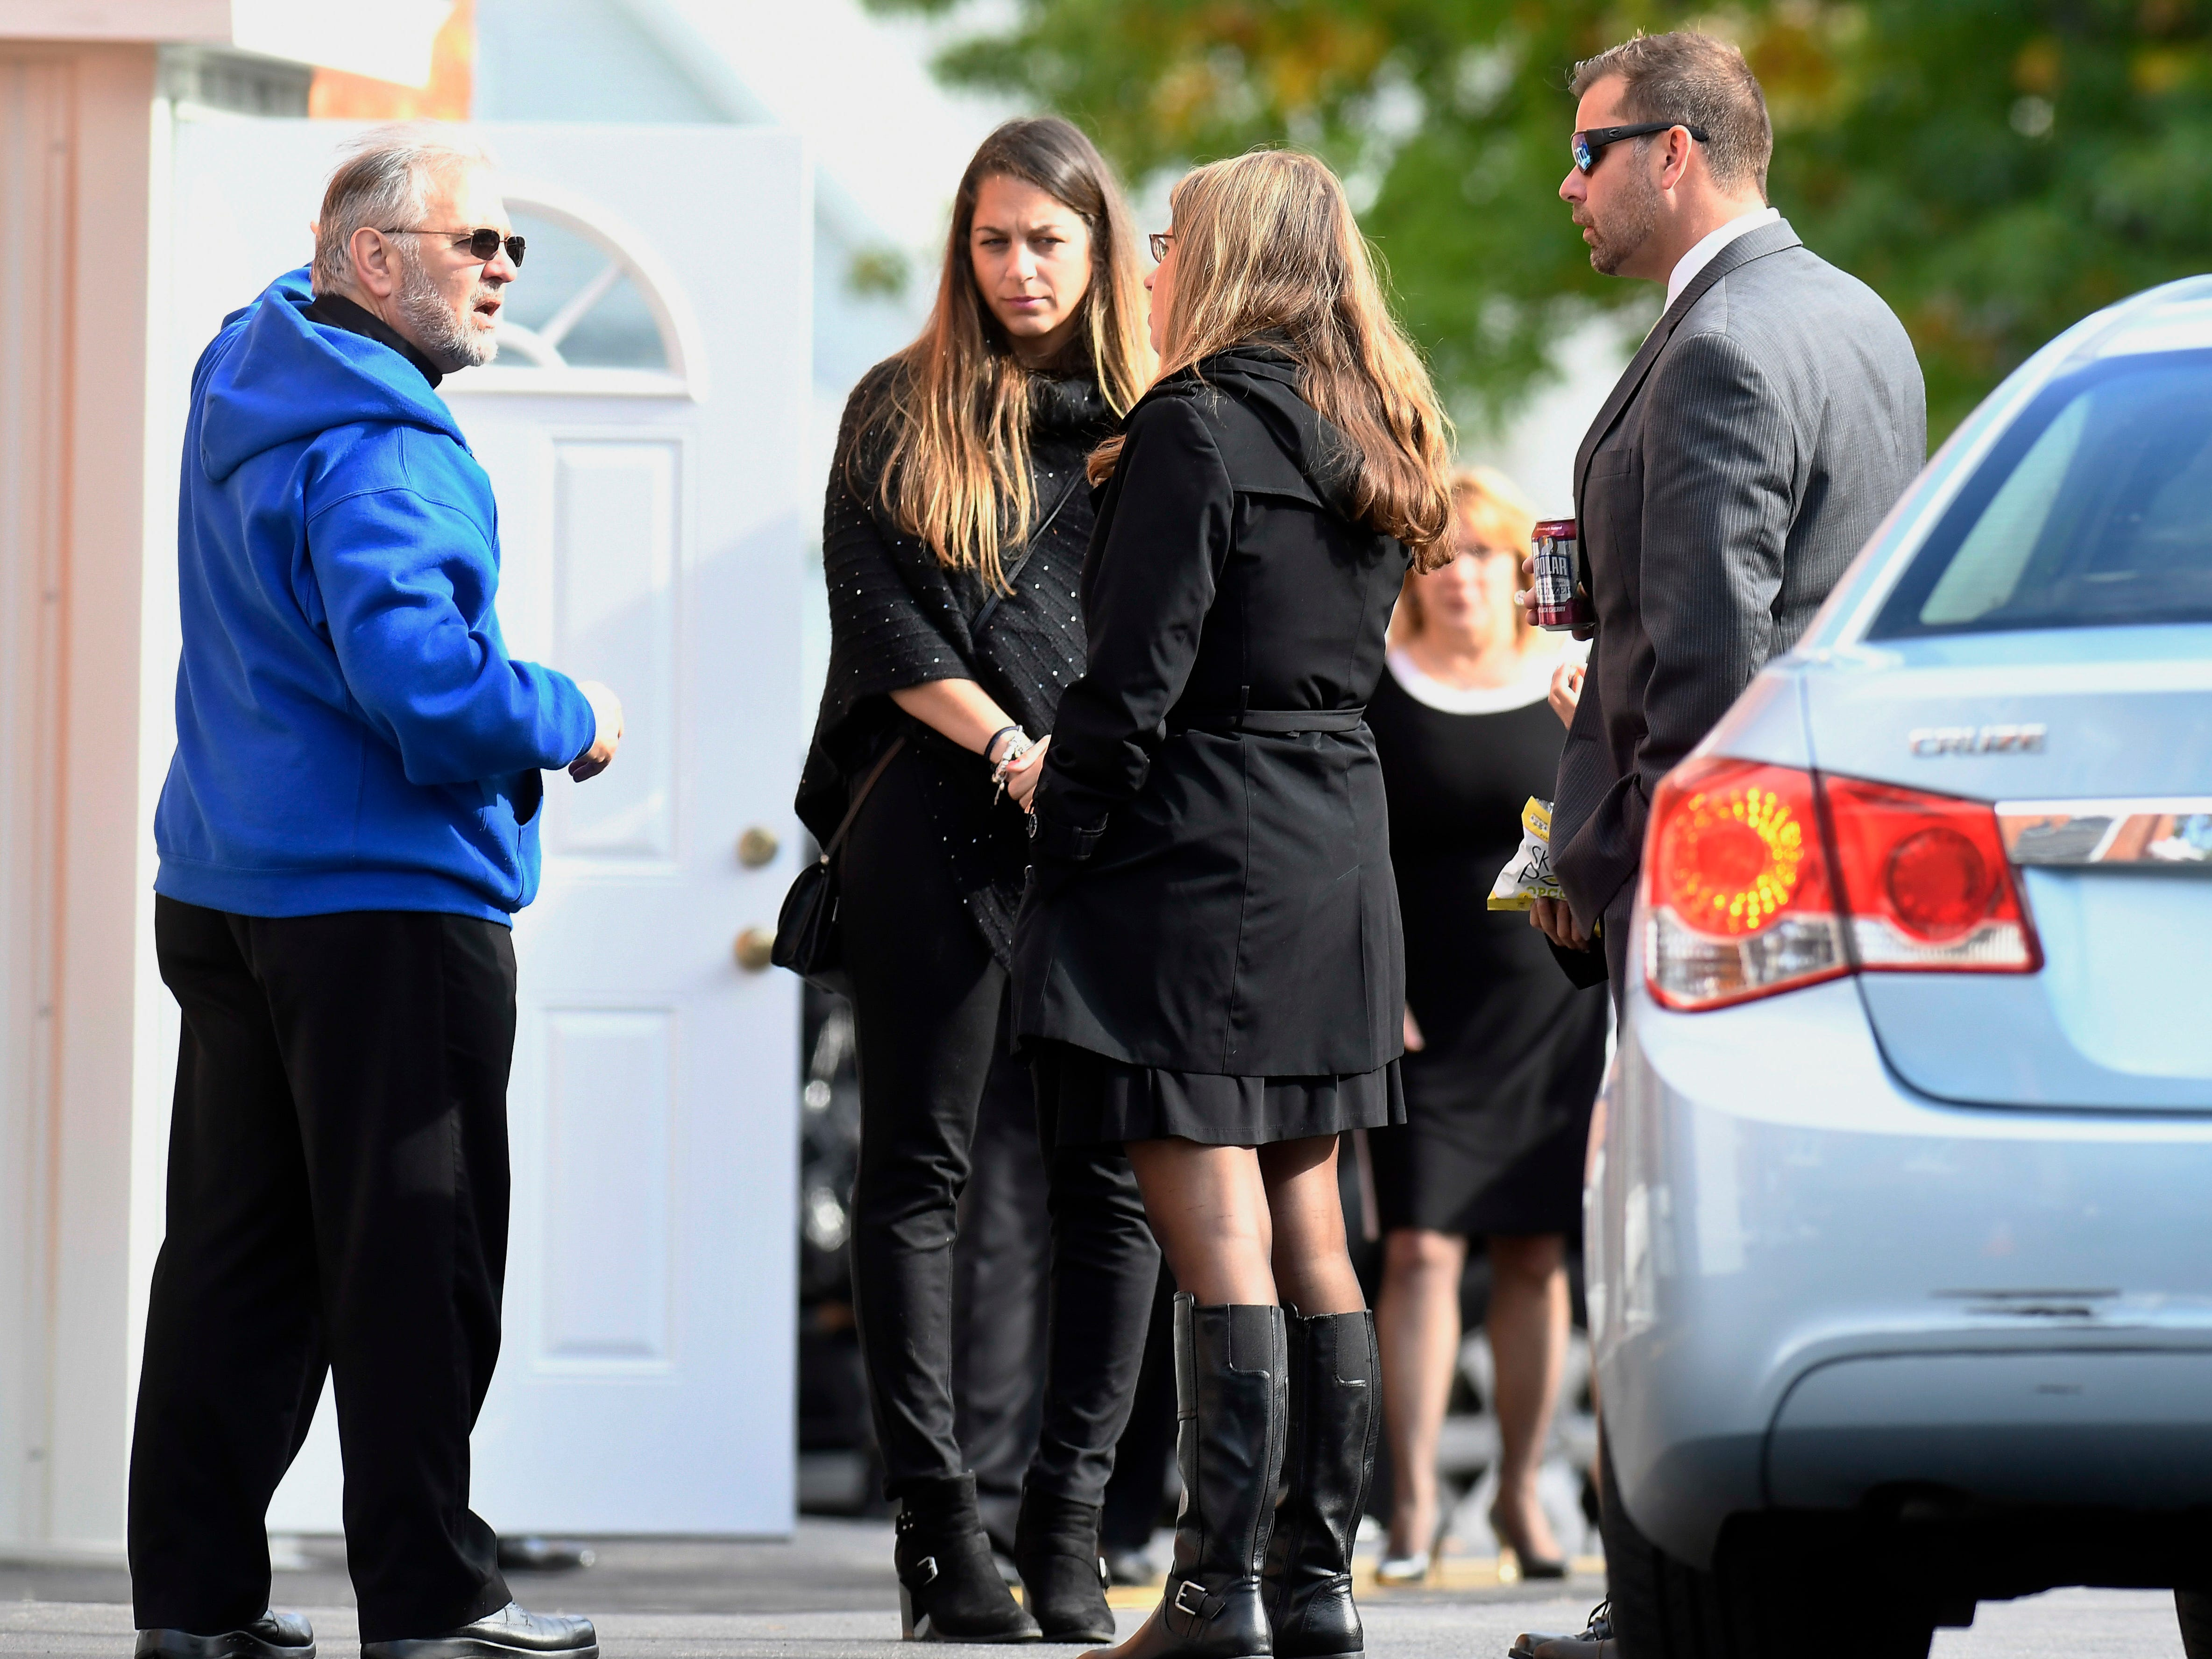 Friends and family attend a funeral mass for eight of the 20 people killed in last Saturday's fatal limousine crash in Schoharie, N.Y., during a memorial service at St. Stanislaus Roman Catholic Church in Amsterdam, N.Y., Saturday, Oct. 13, 2018. (AP Photo/Hans Pennink)